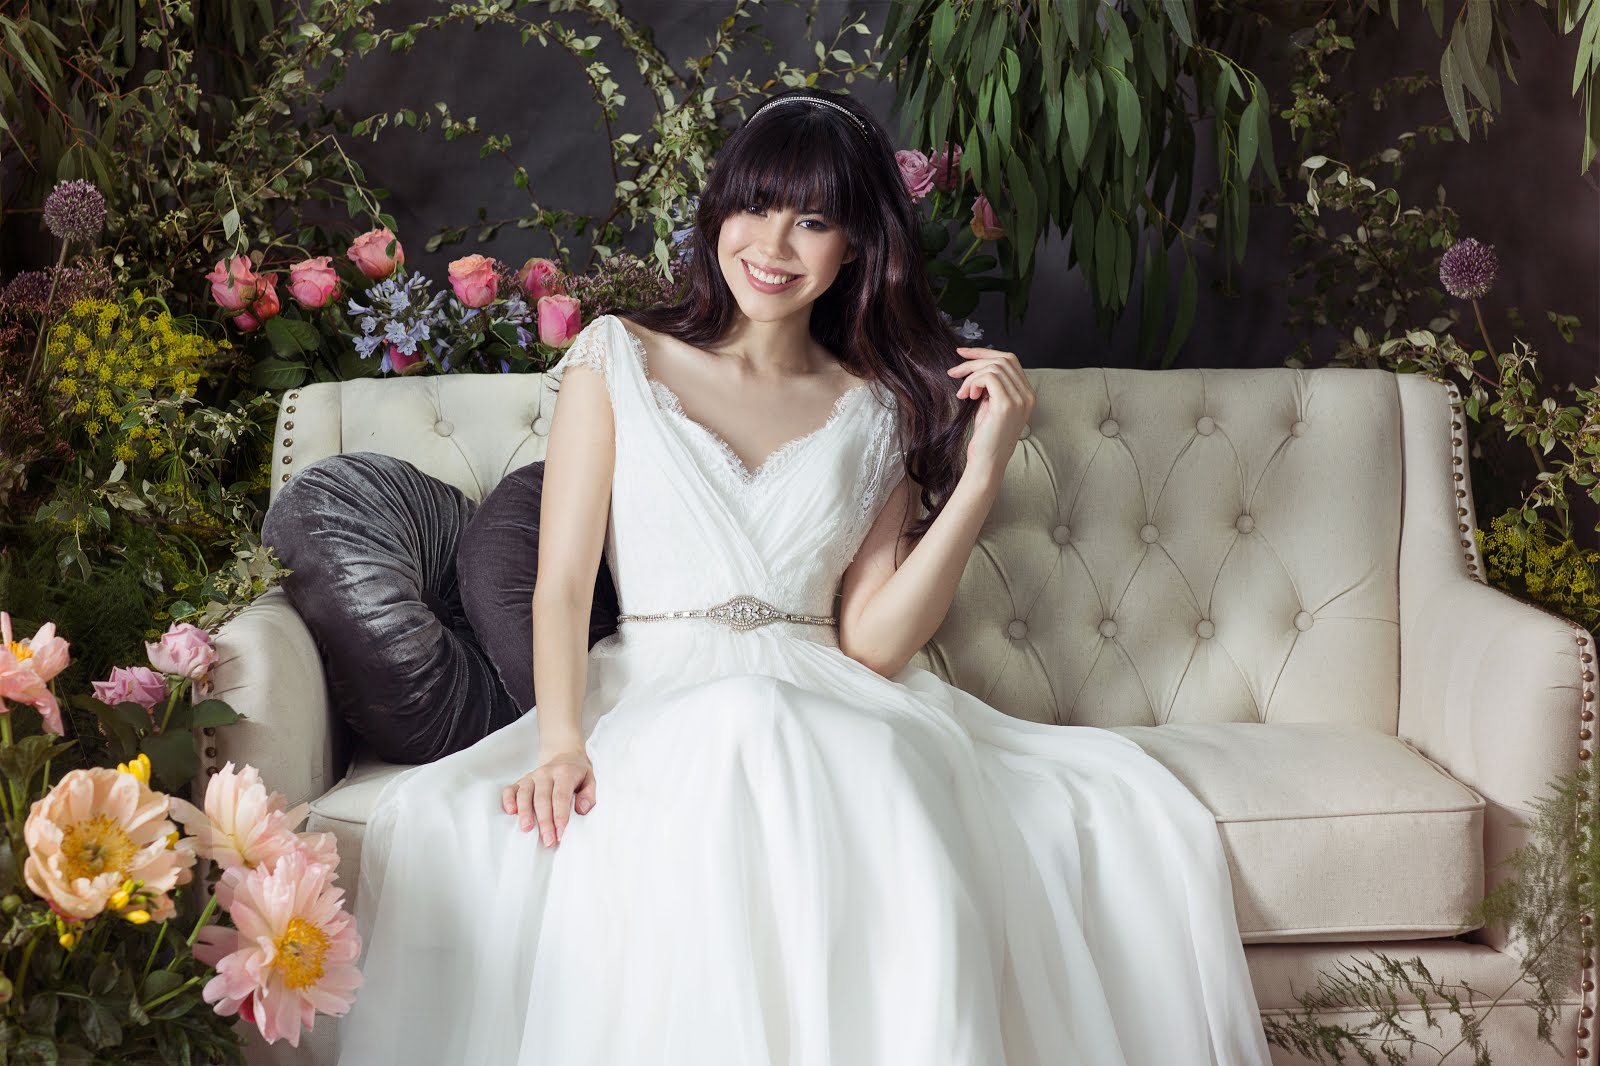 Choosing a wedding dress - what you don't know until you start looking